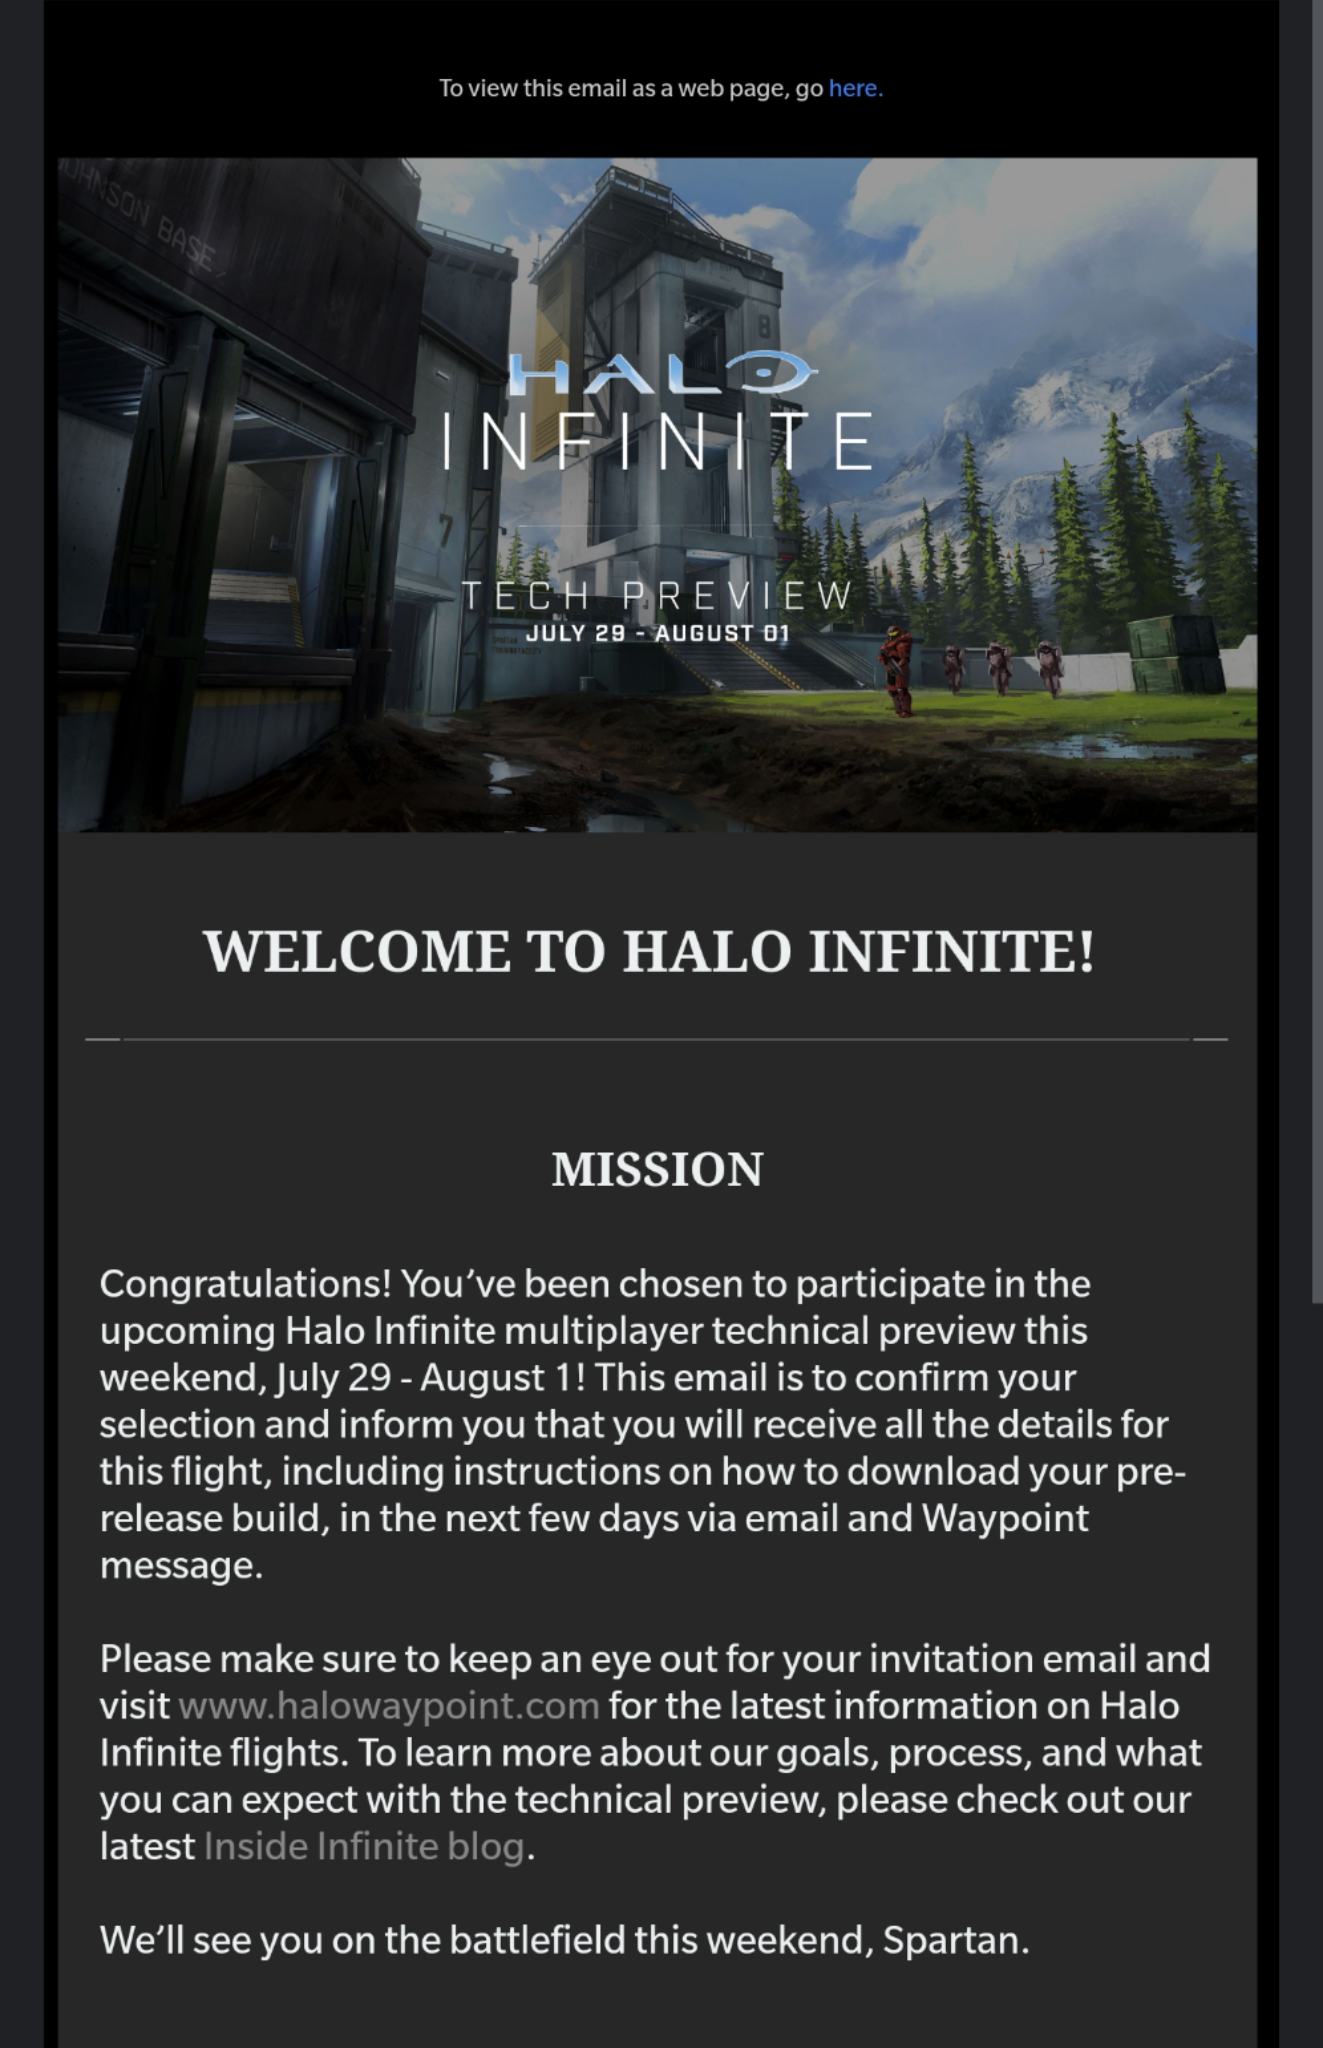 Halo Infinite Multiplayer Preview Invite Email